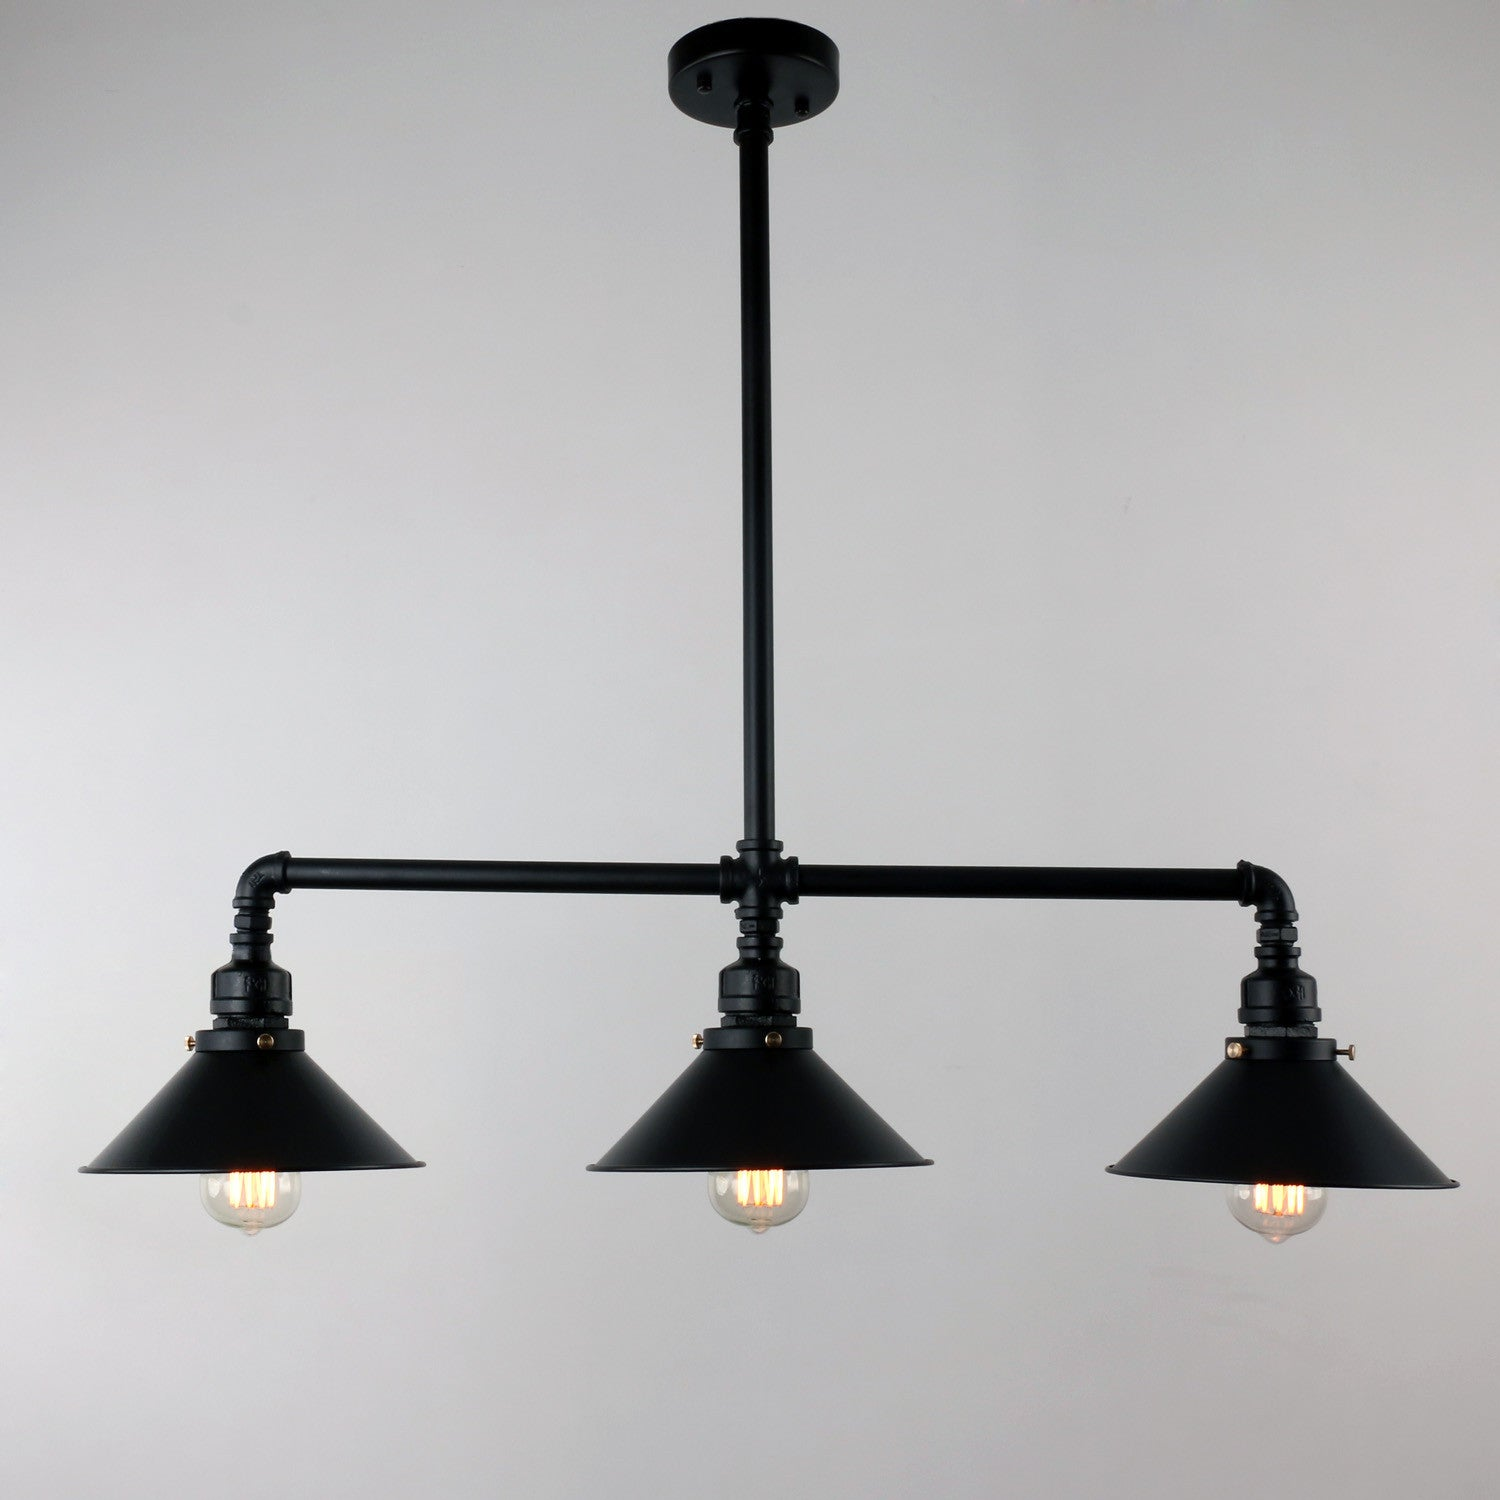 Unitary brand black antique rustic metal shade hanging ceiling unitary brand black antique rustic metal shade hanging ceiling pendant light max 120w with 3 lights aloadofball